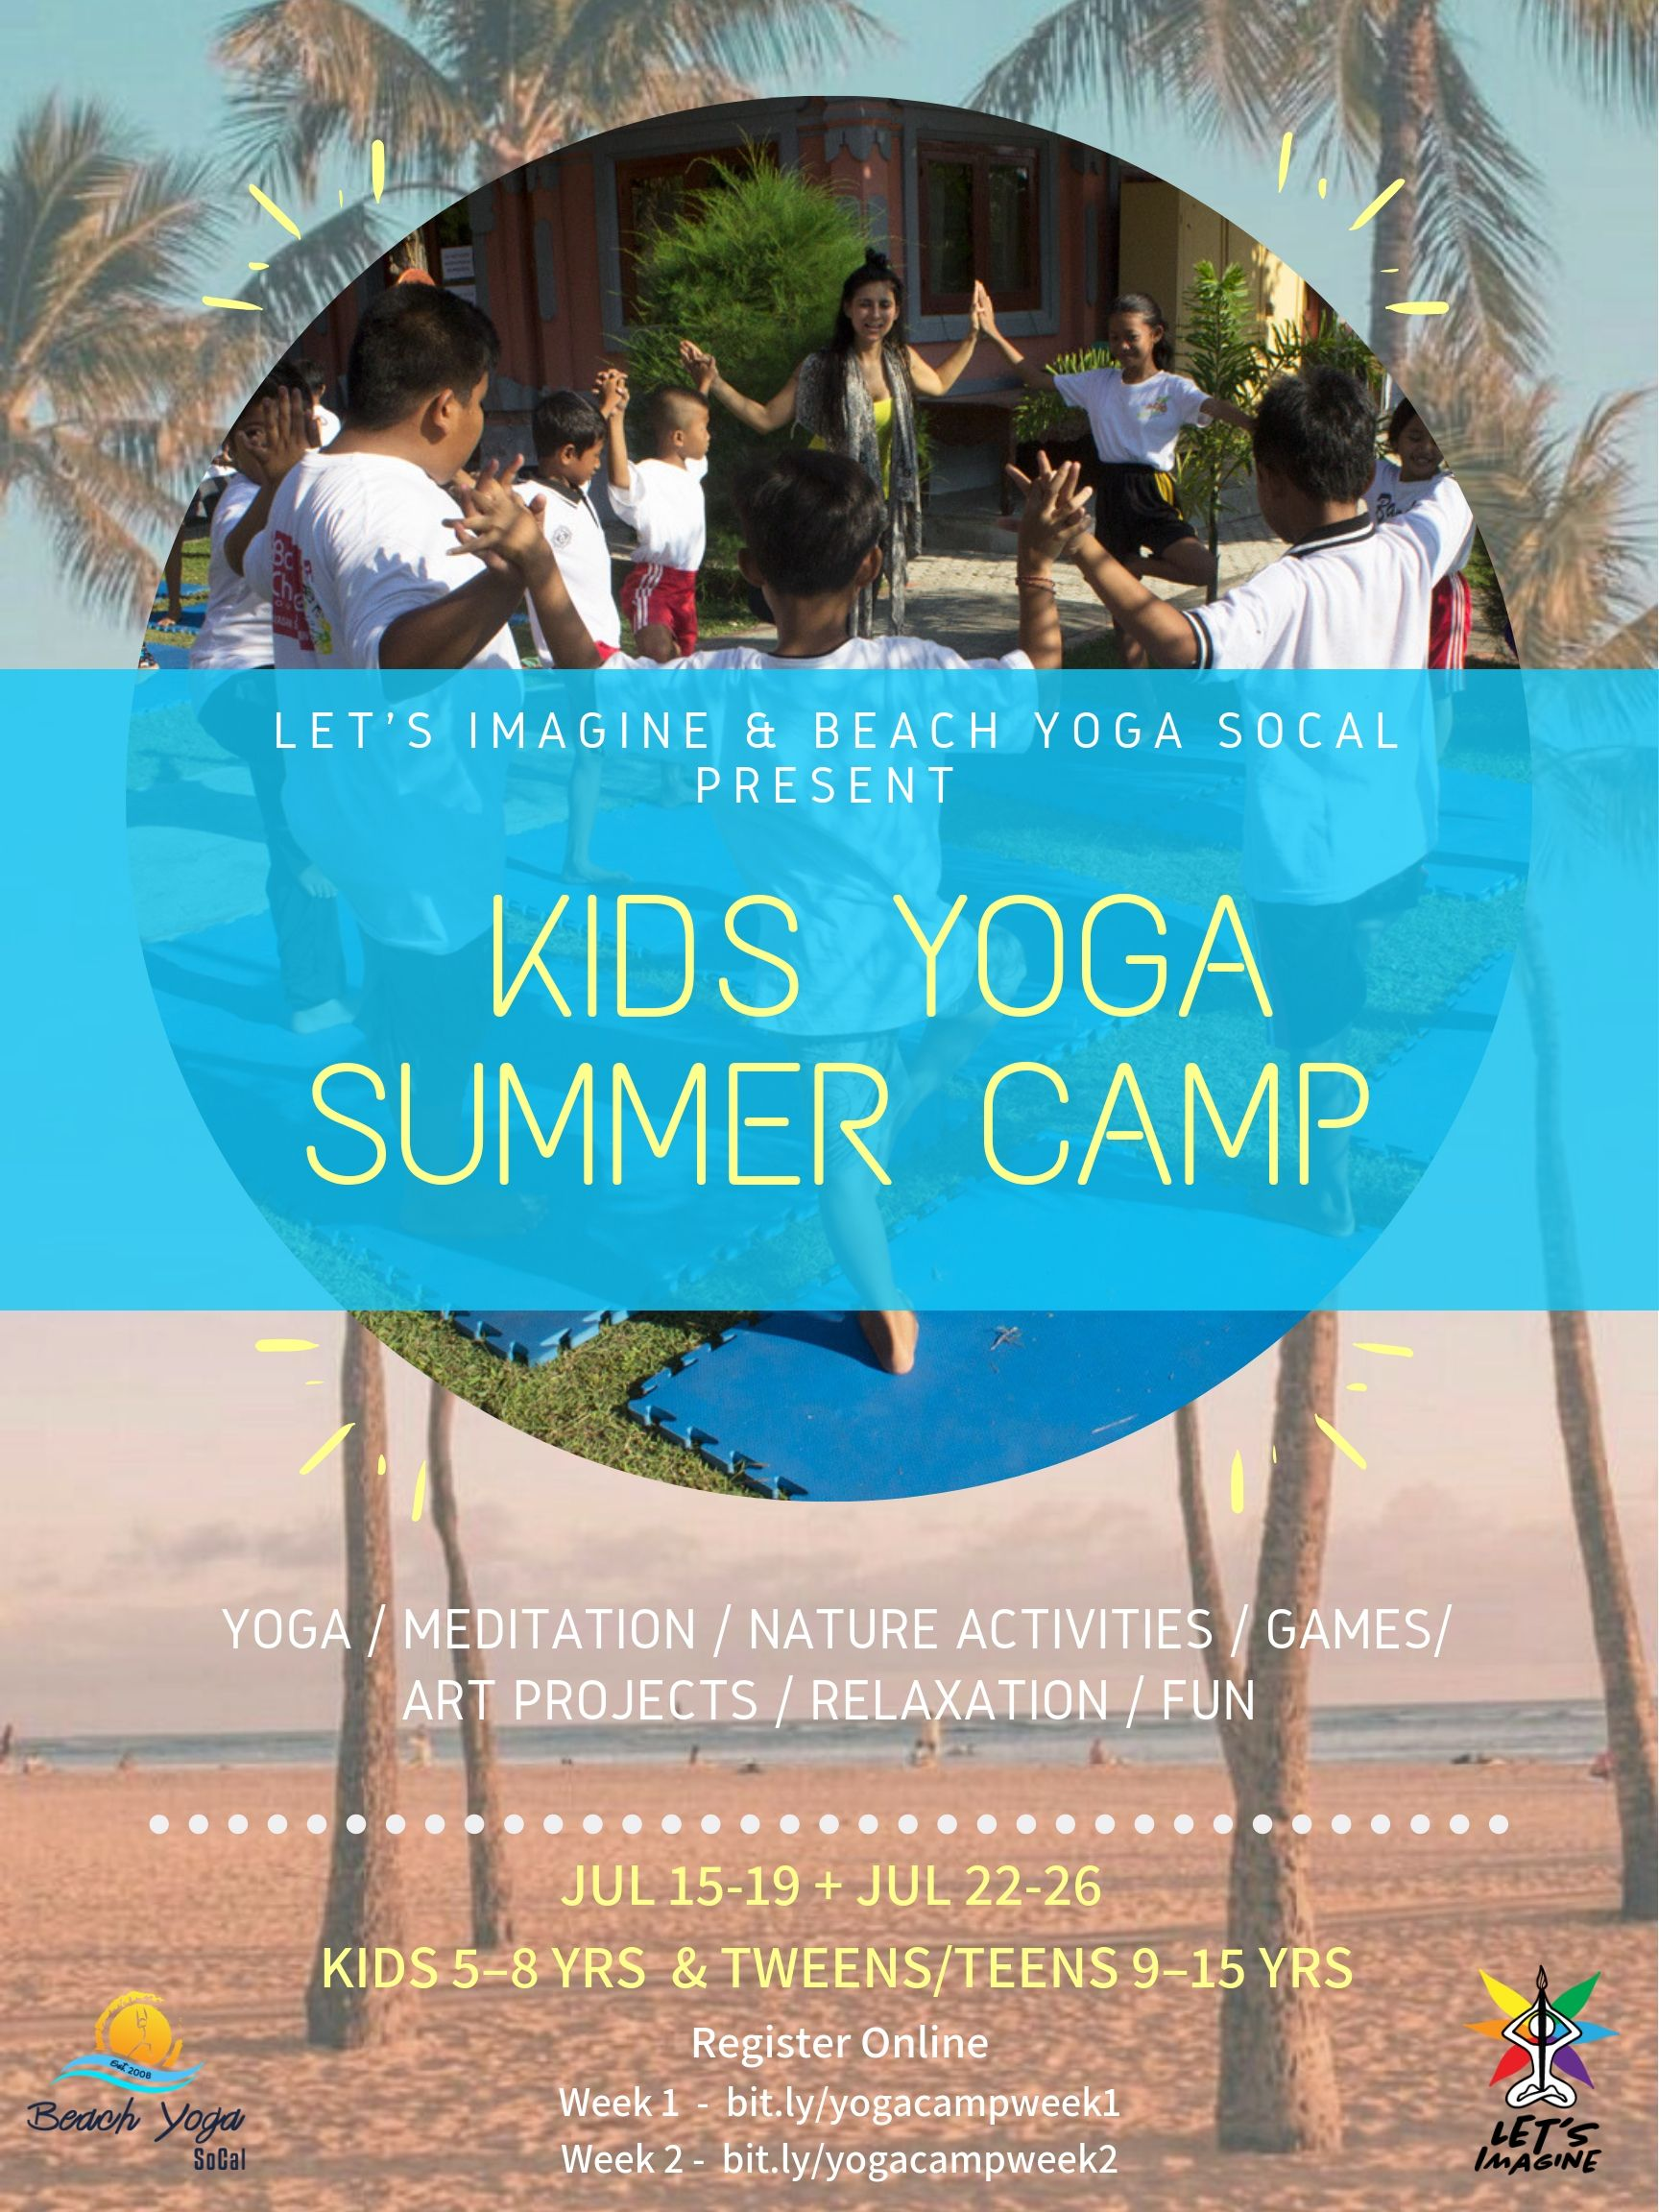 kids yoga summer camp JPG.jpg